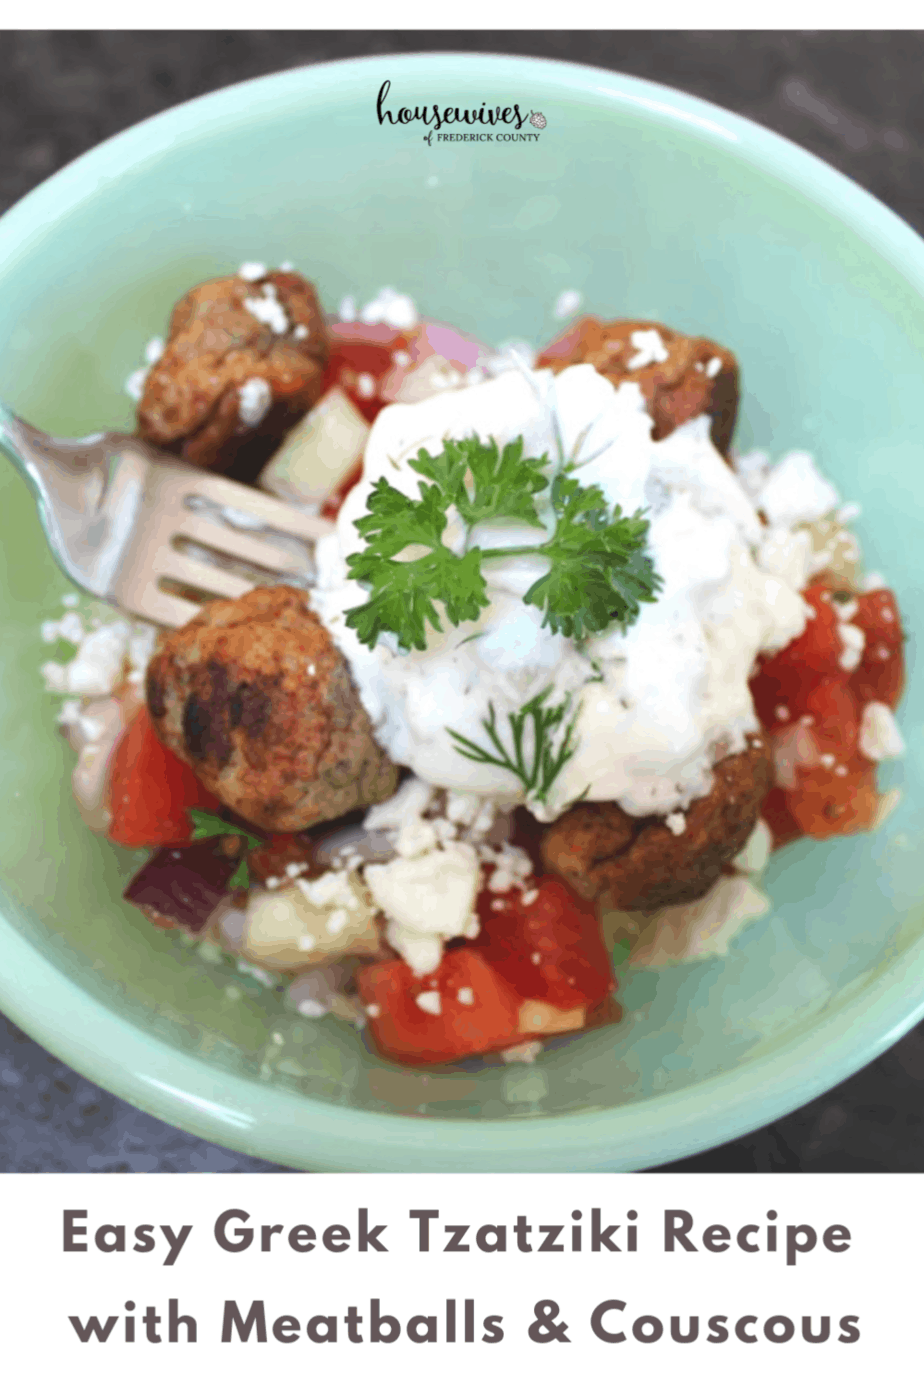 Easy Greek Tzatziki Recipe with Meatballs & Couscous